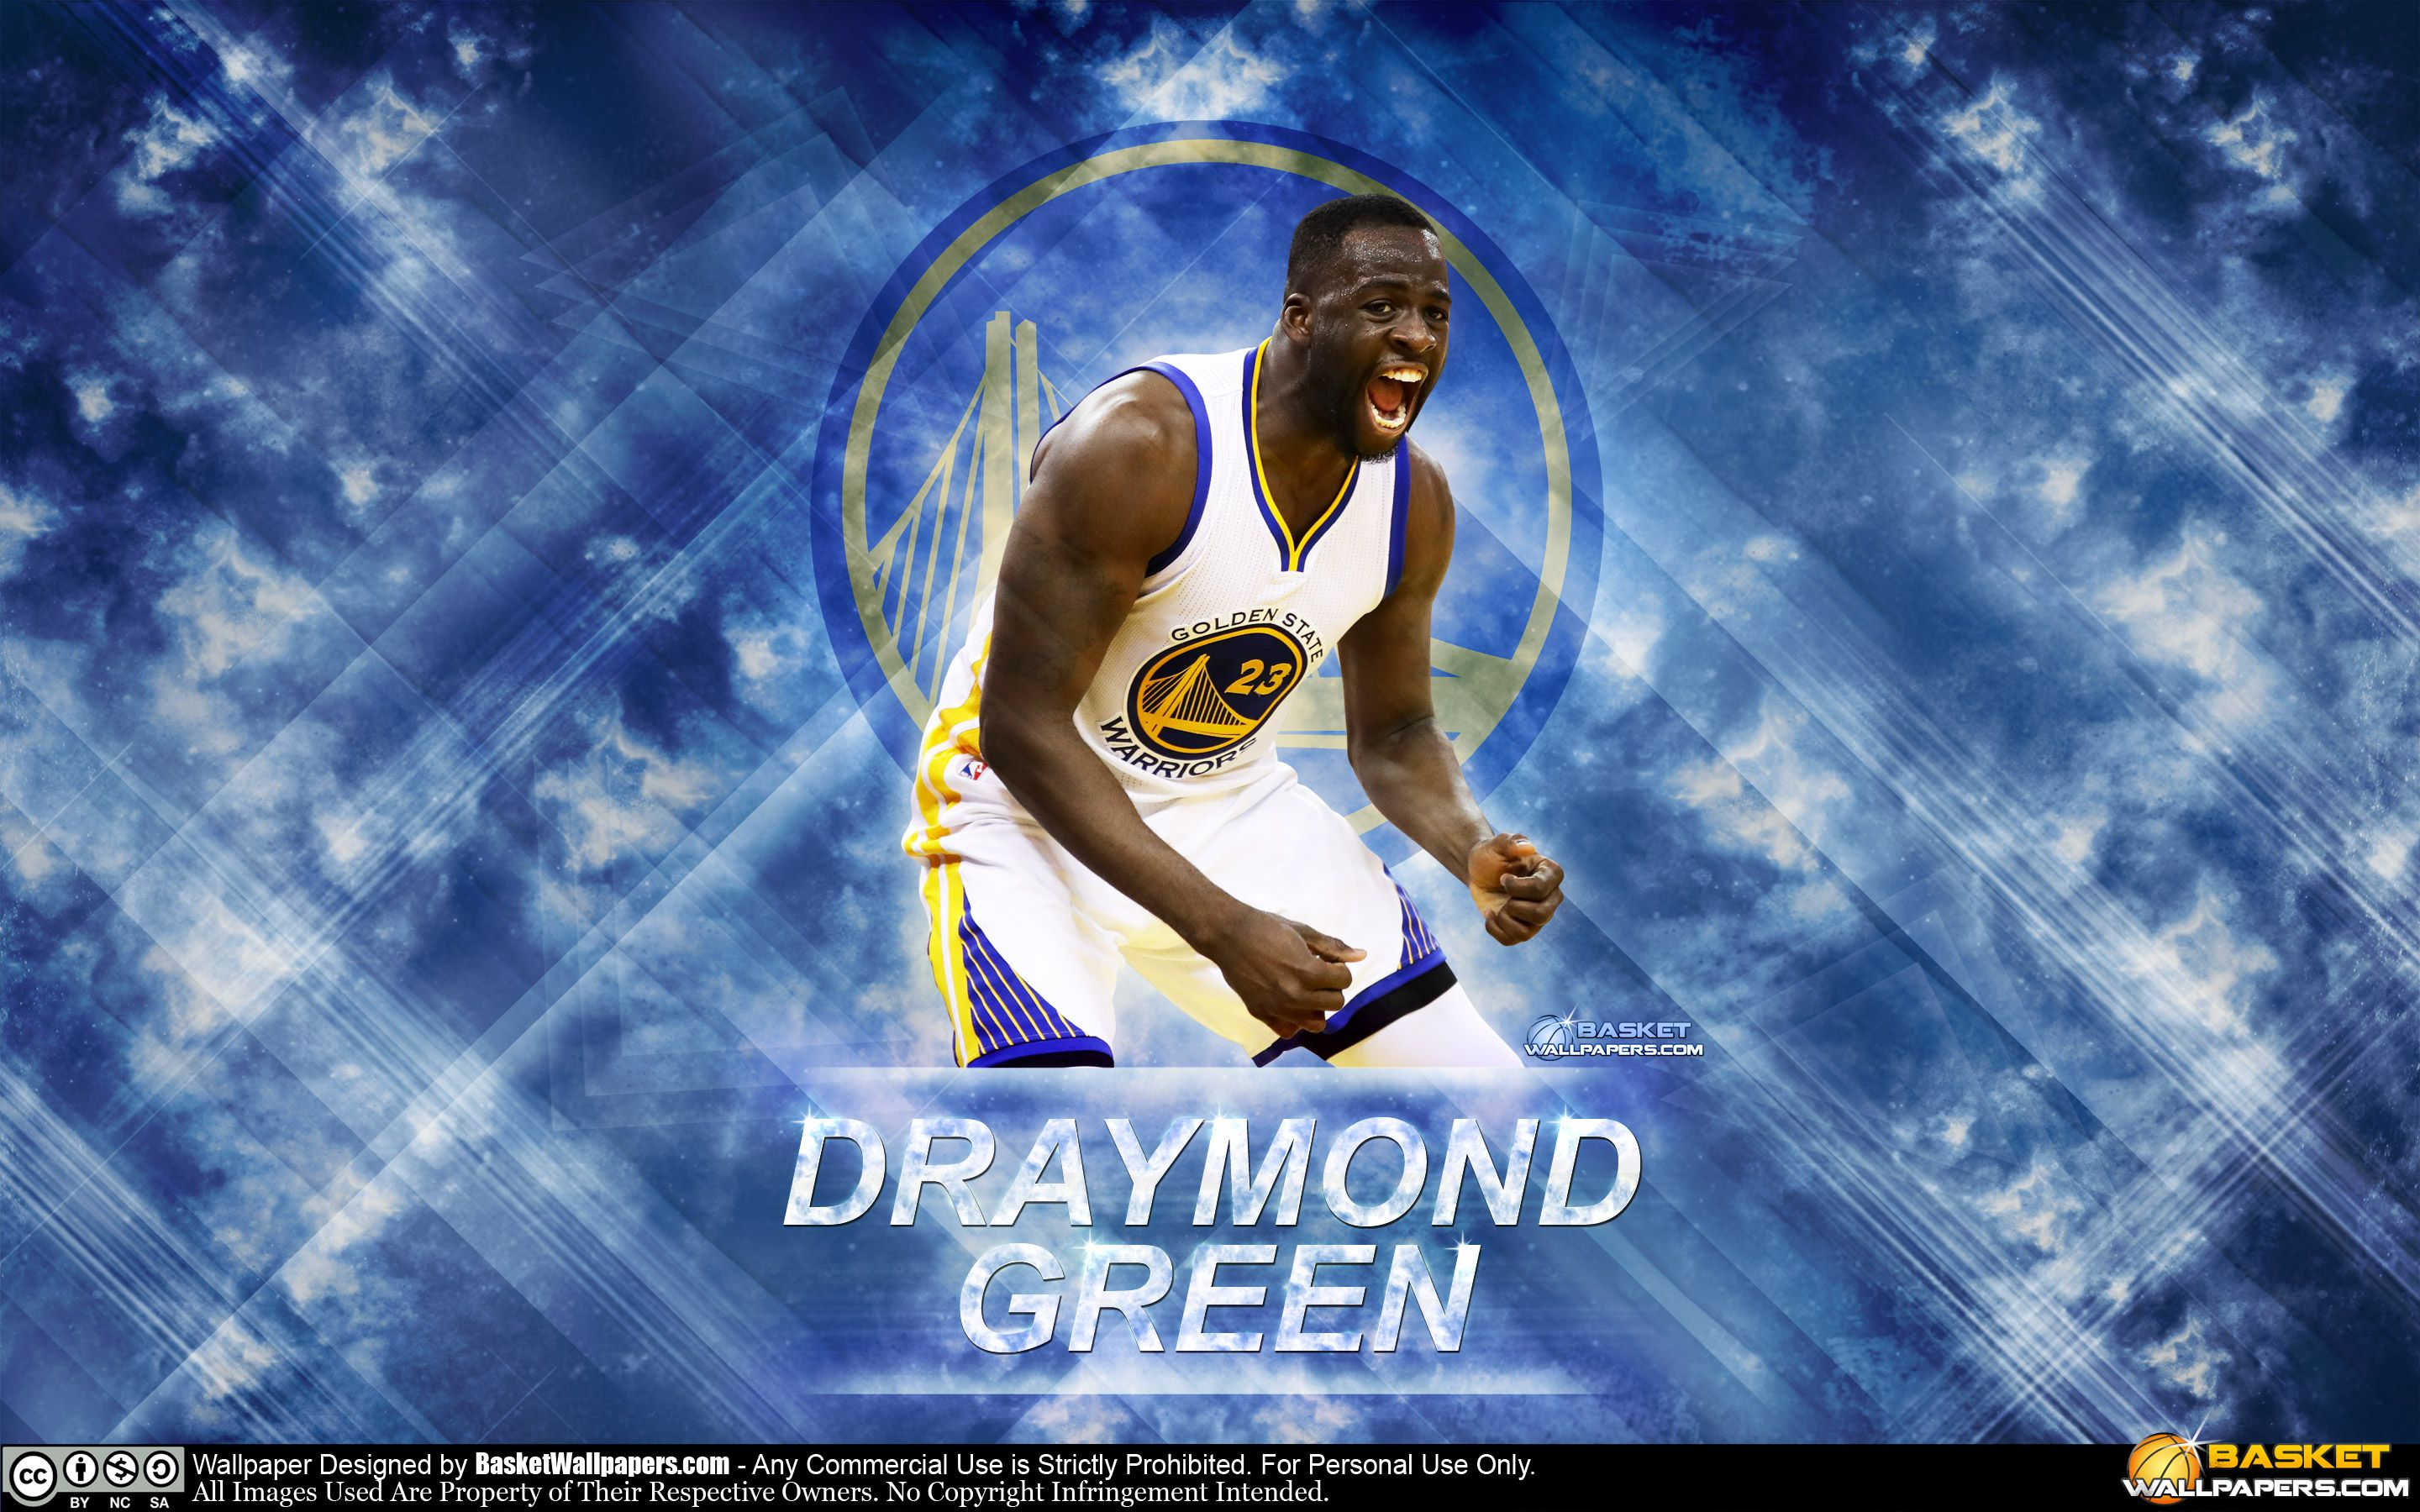 Golden State Warriors Wallpaper Draymond Green Best Wallpaper Hd Golden State Warriors Wallpaper Warriors Wallpaper Golden State Warriors Pictures